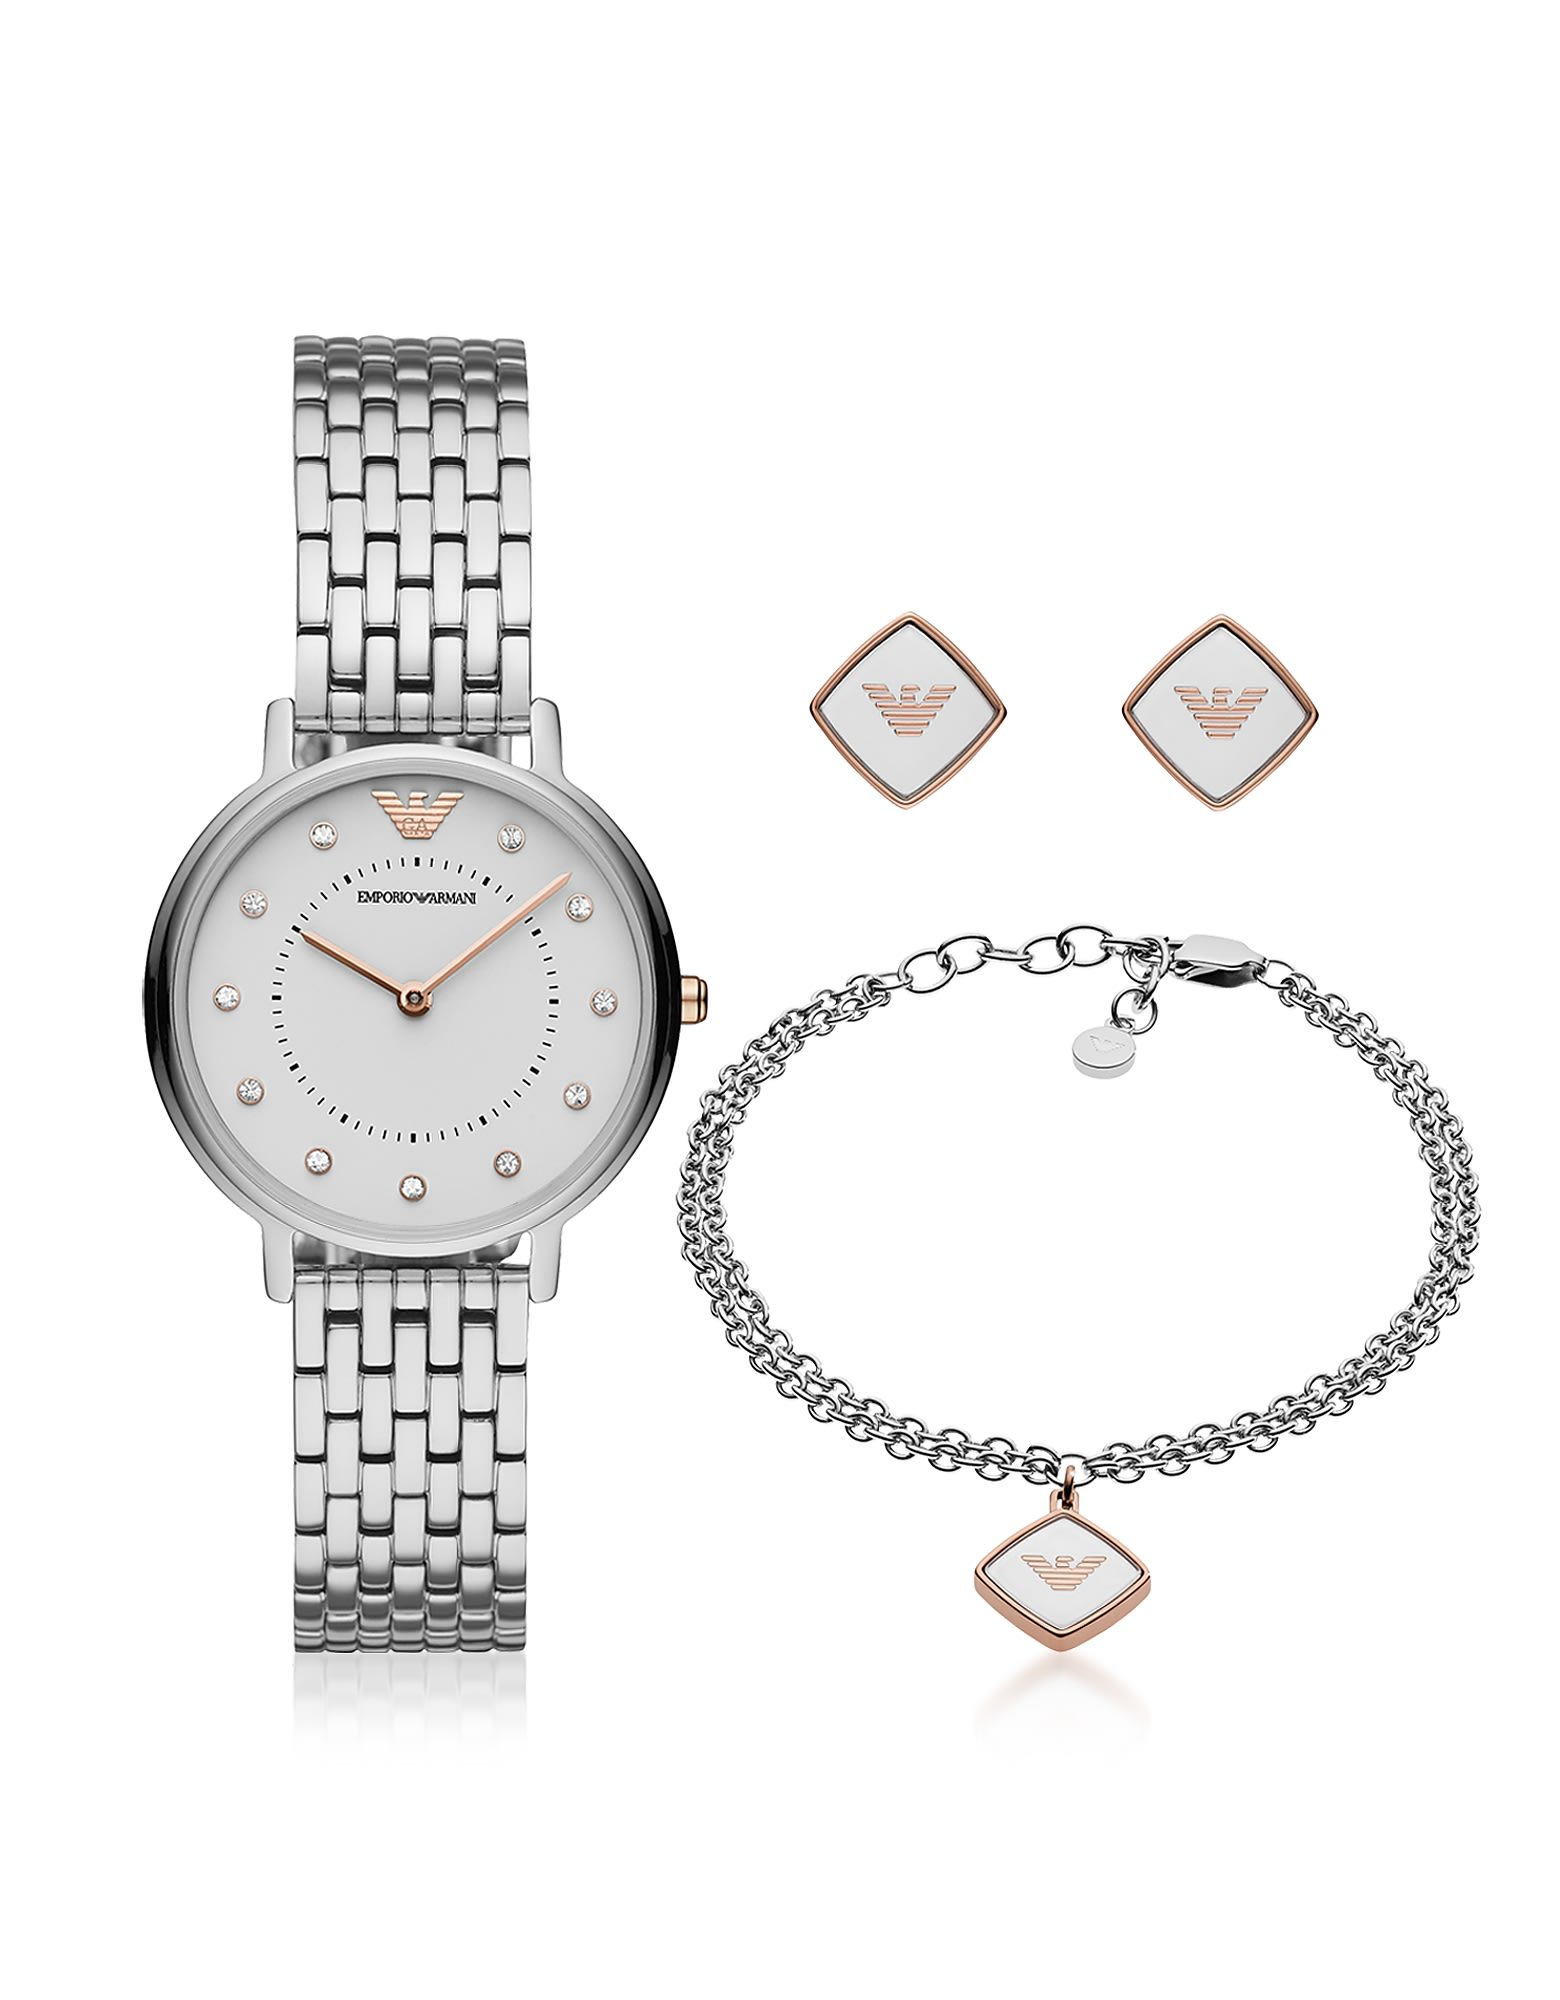 Emporio Armani Kappa Stainless Steel Watch Set